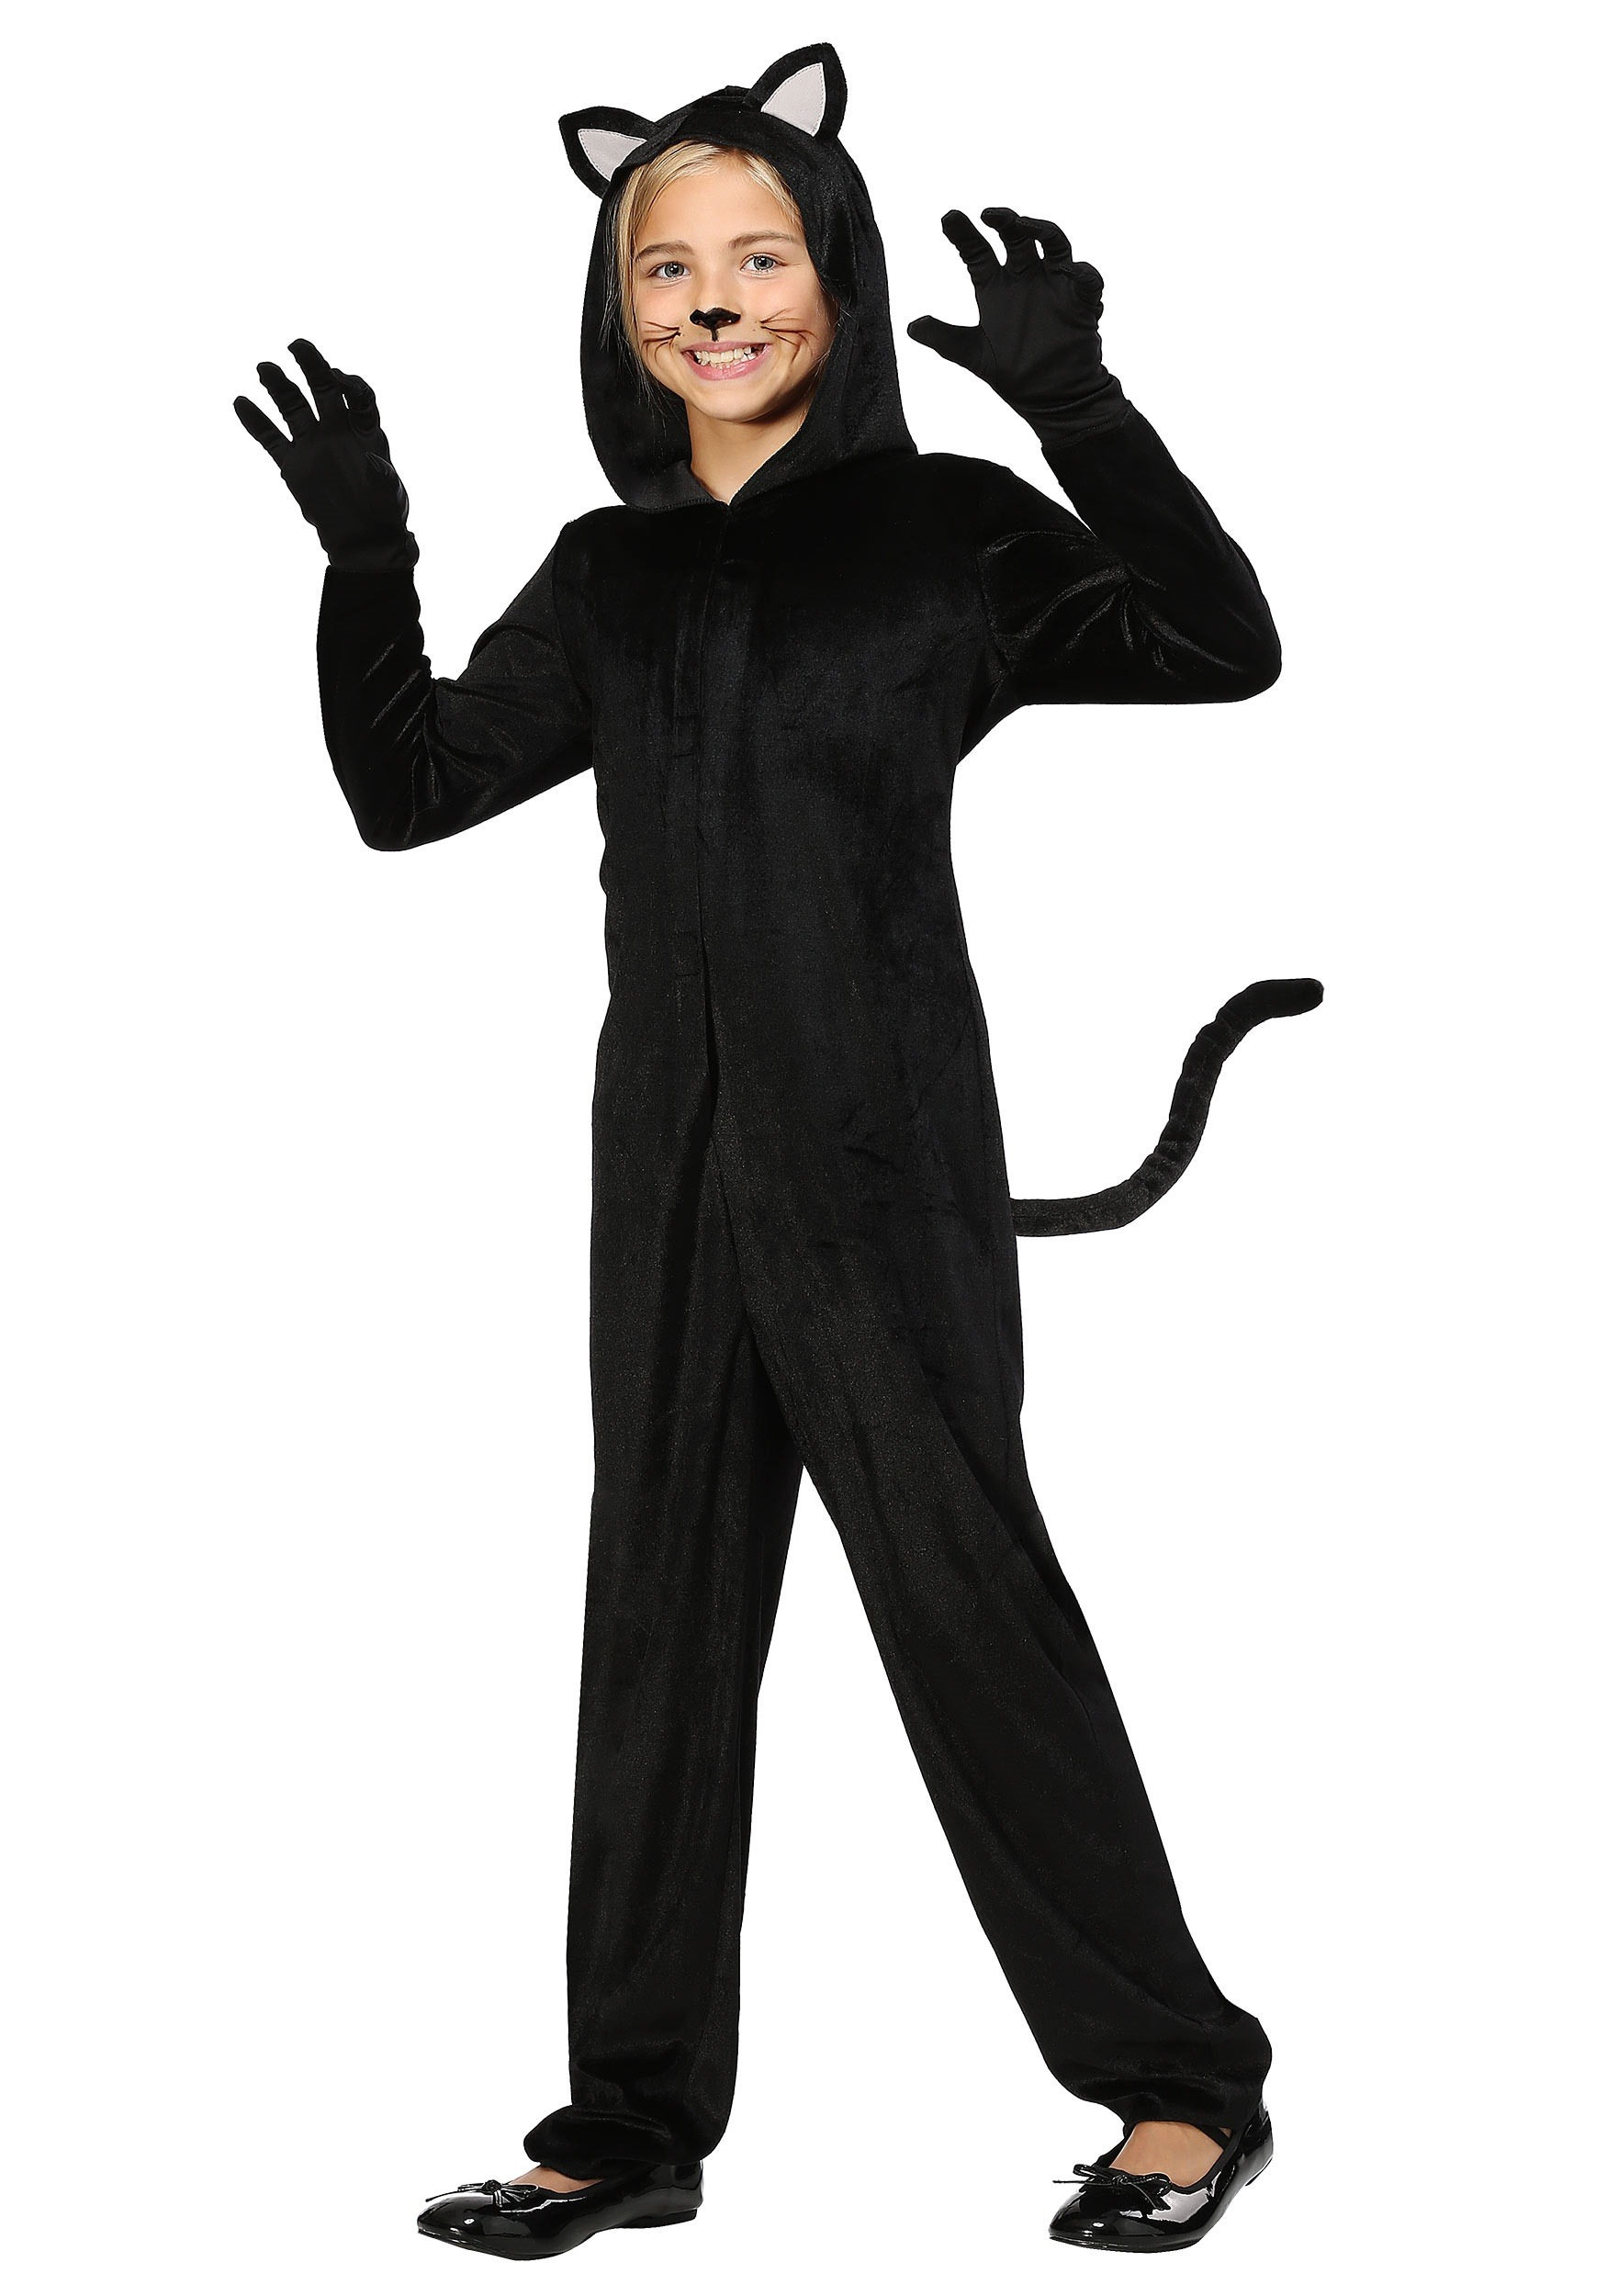 Black Cat Girls Costume  sc 1 st  Halloween Costumes : girls halloween cat costumes  - Germanpascual.Com